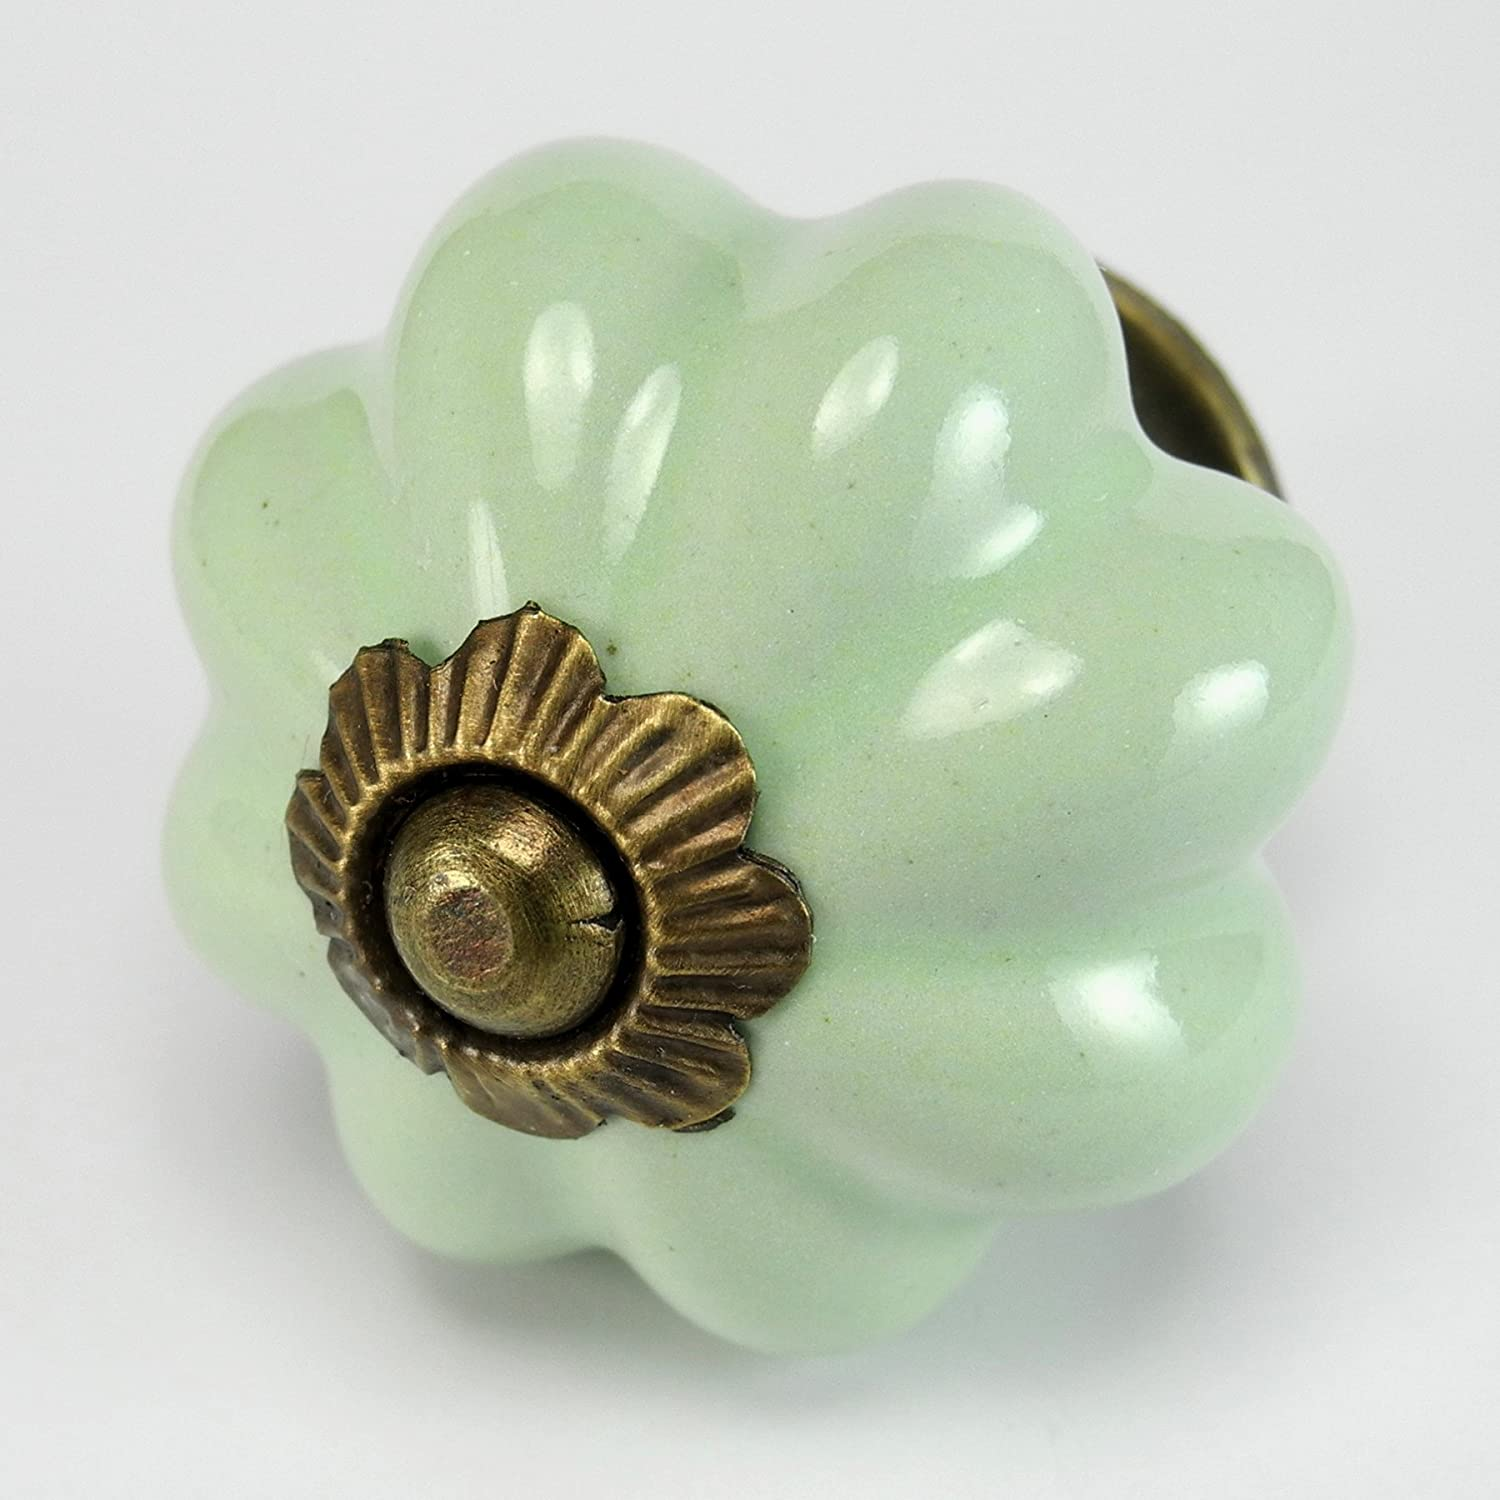 Retro Green Ceramic Cabinet Knobs, Drawer Pulls & Handles Set/4pc ...